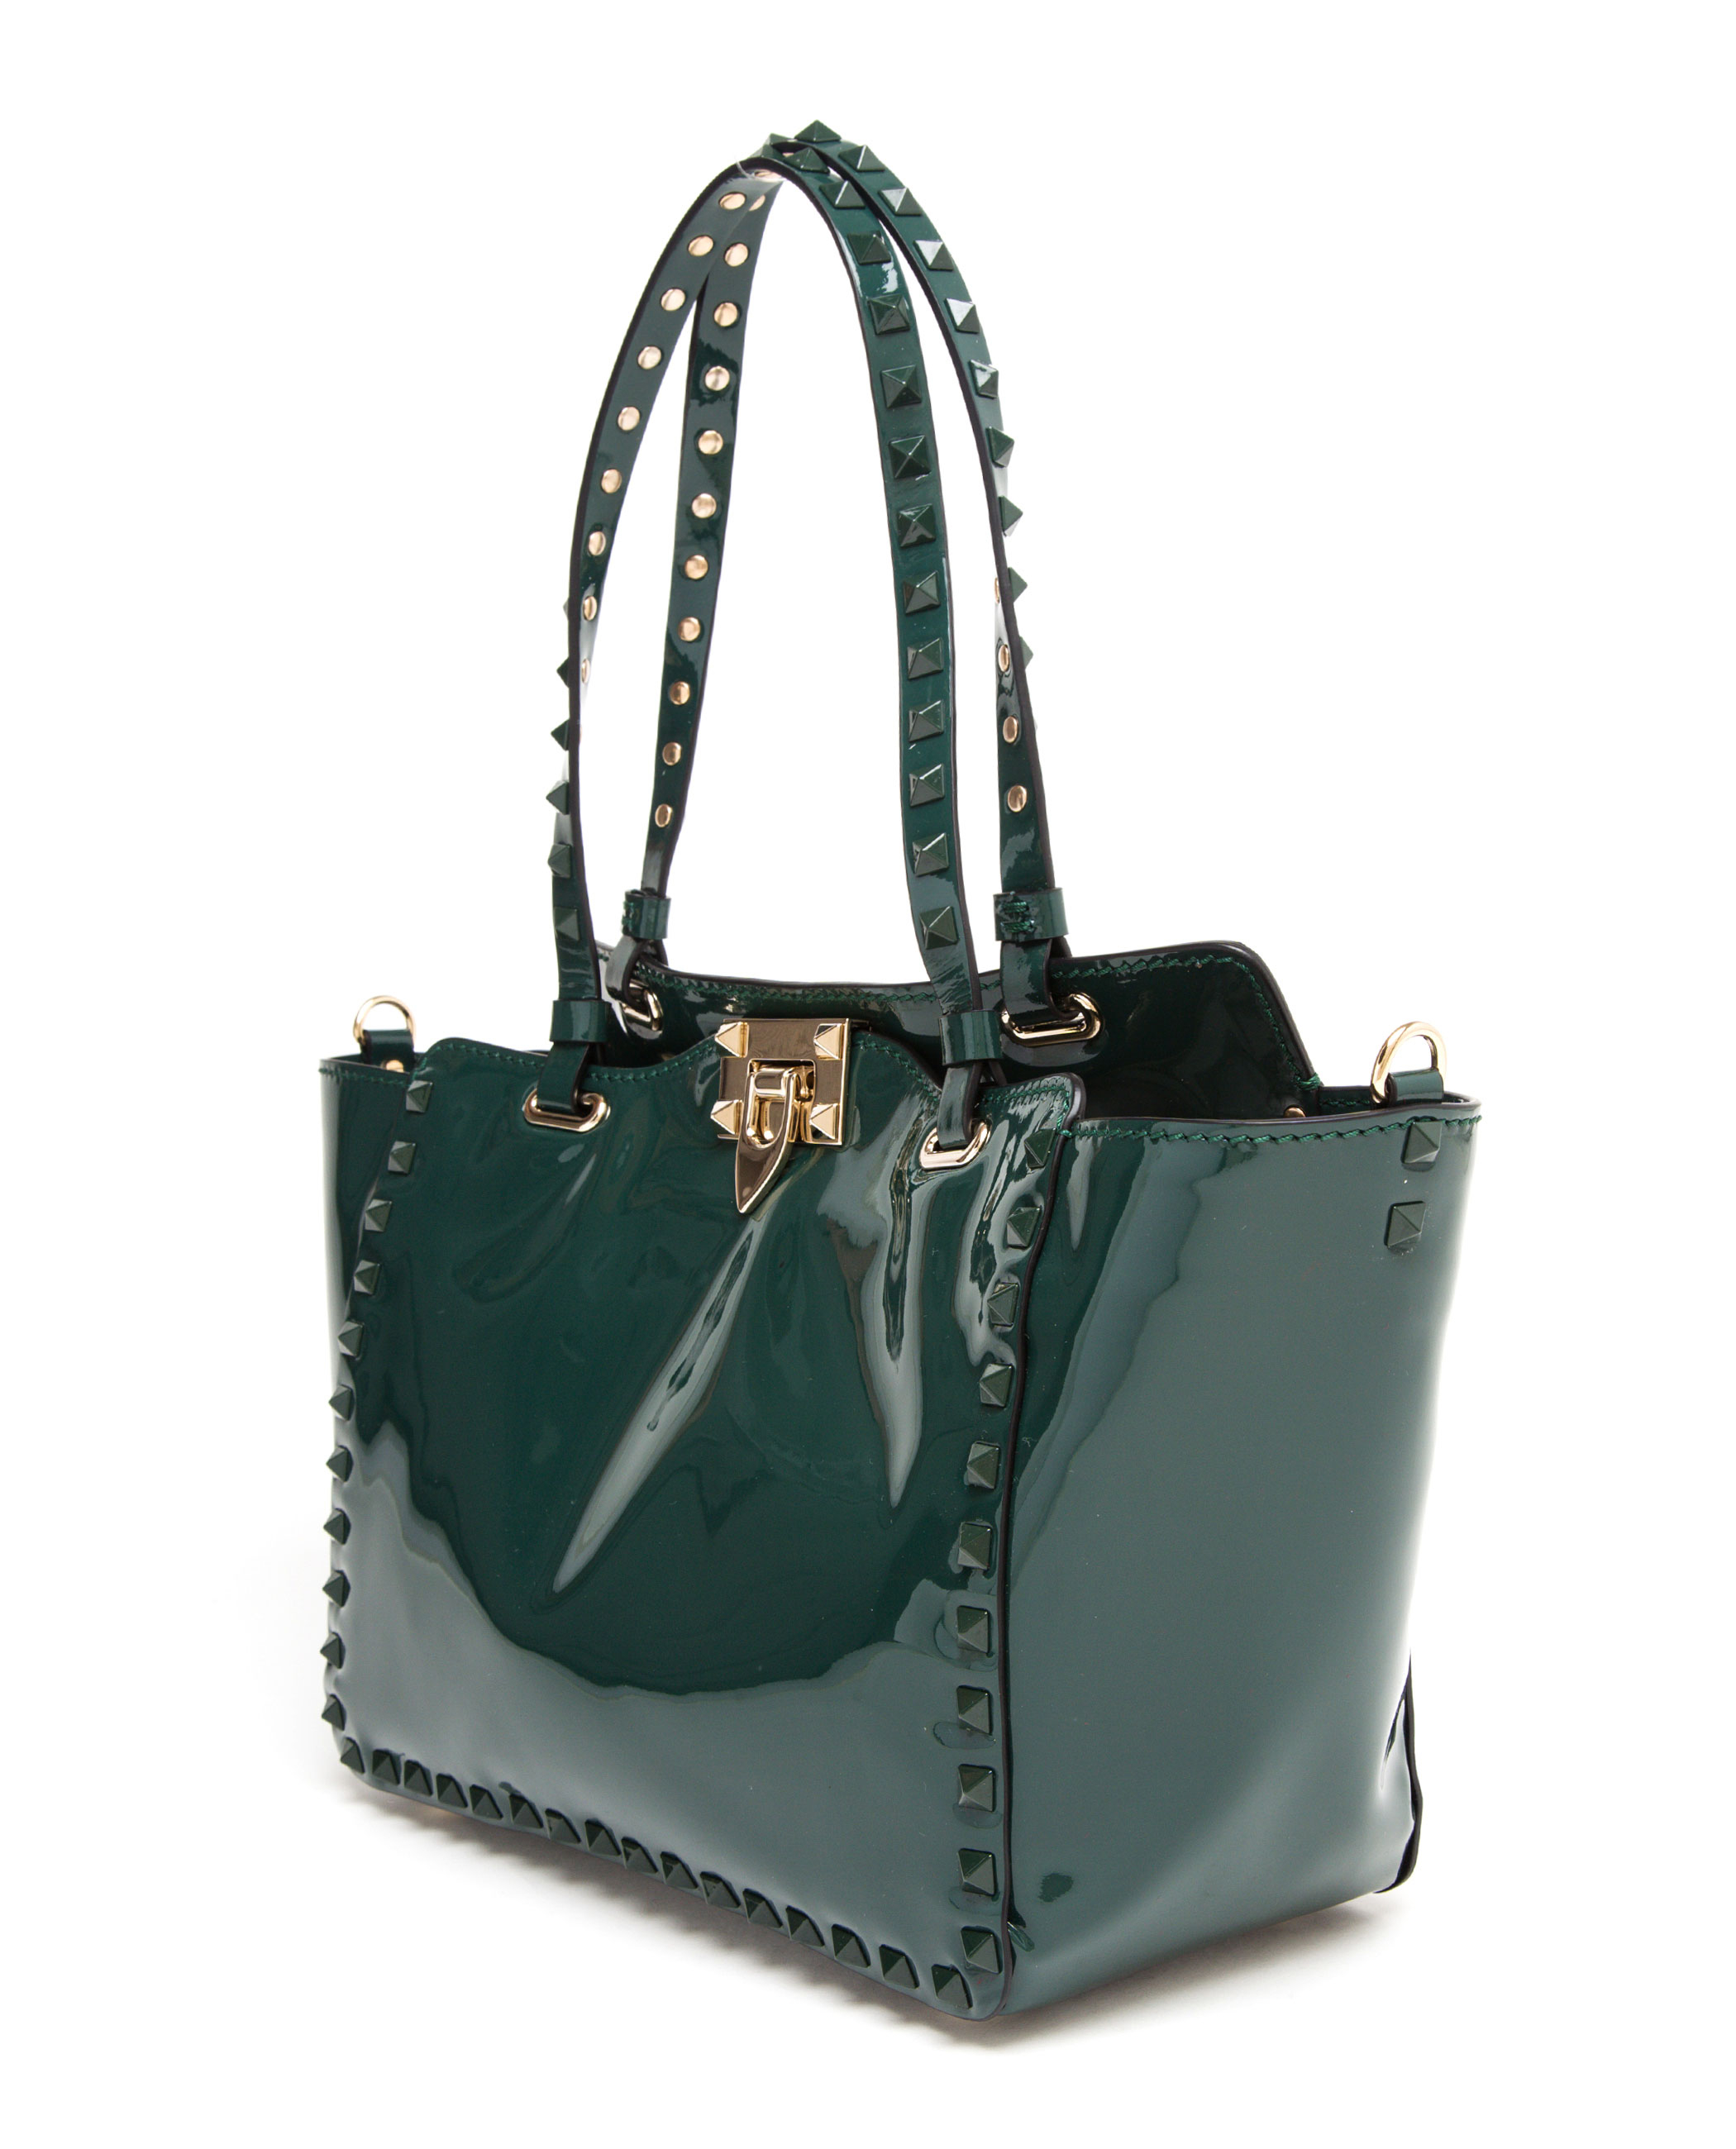 c28c91a0d Gallery. Previously sold at: Browns · Women's Valentino Rockstud Bags